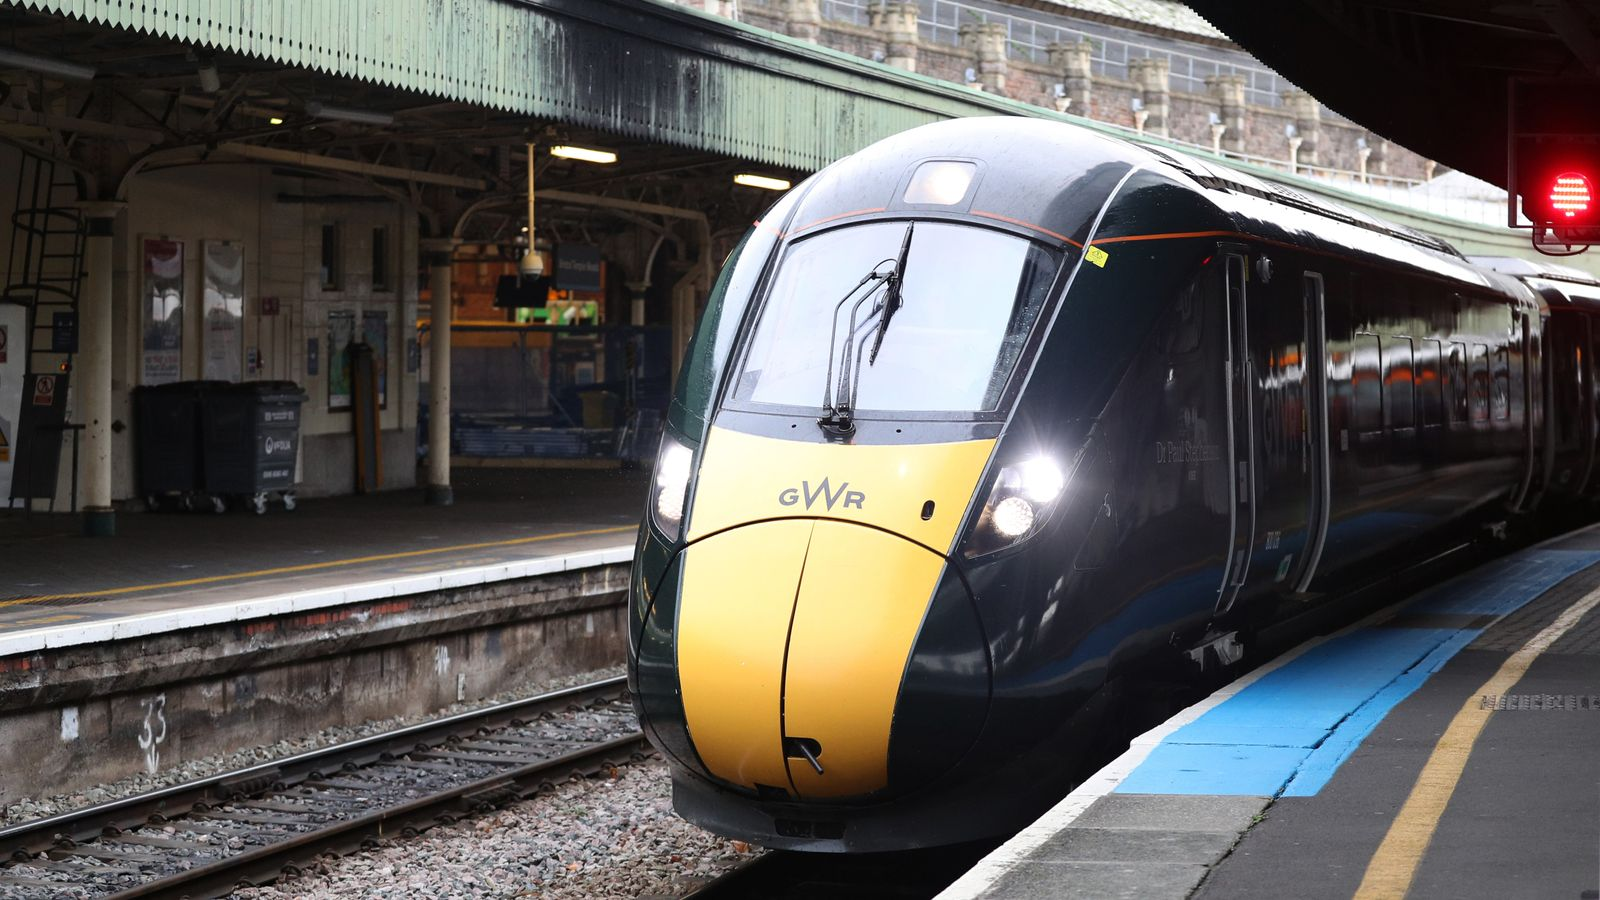 Rail passengers warned of disruption 'into next week' after train cracks found